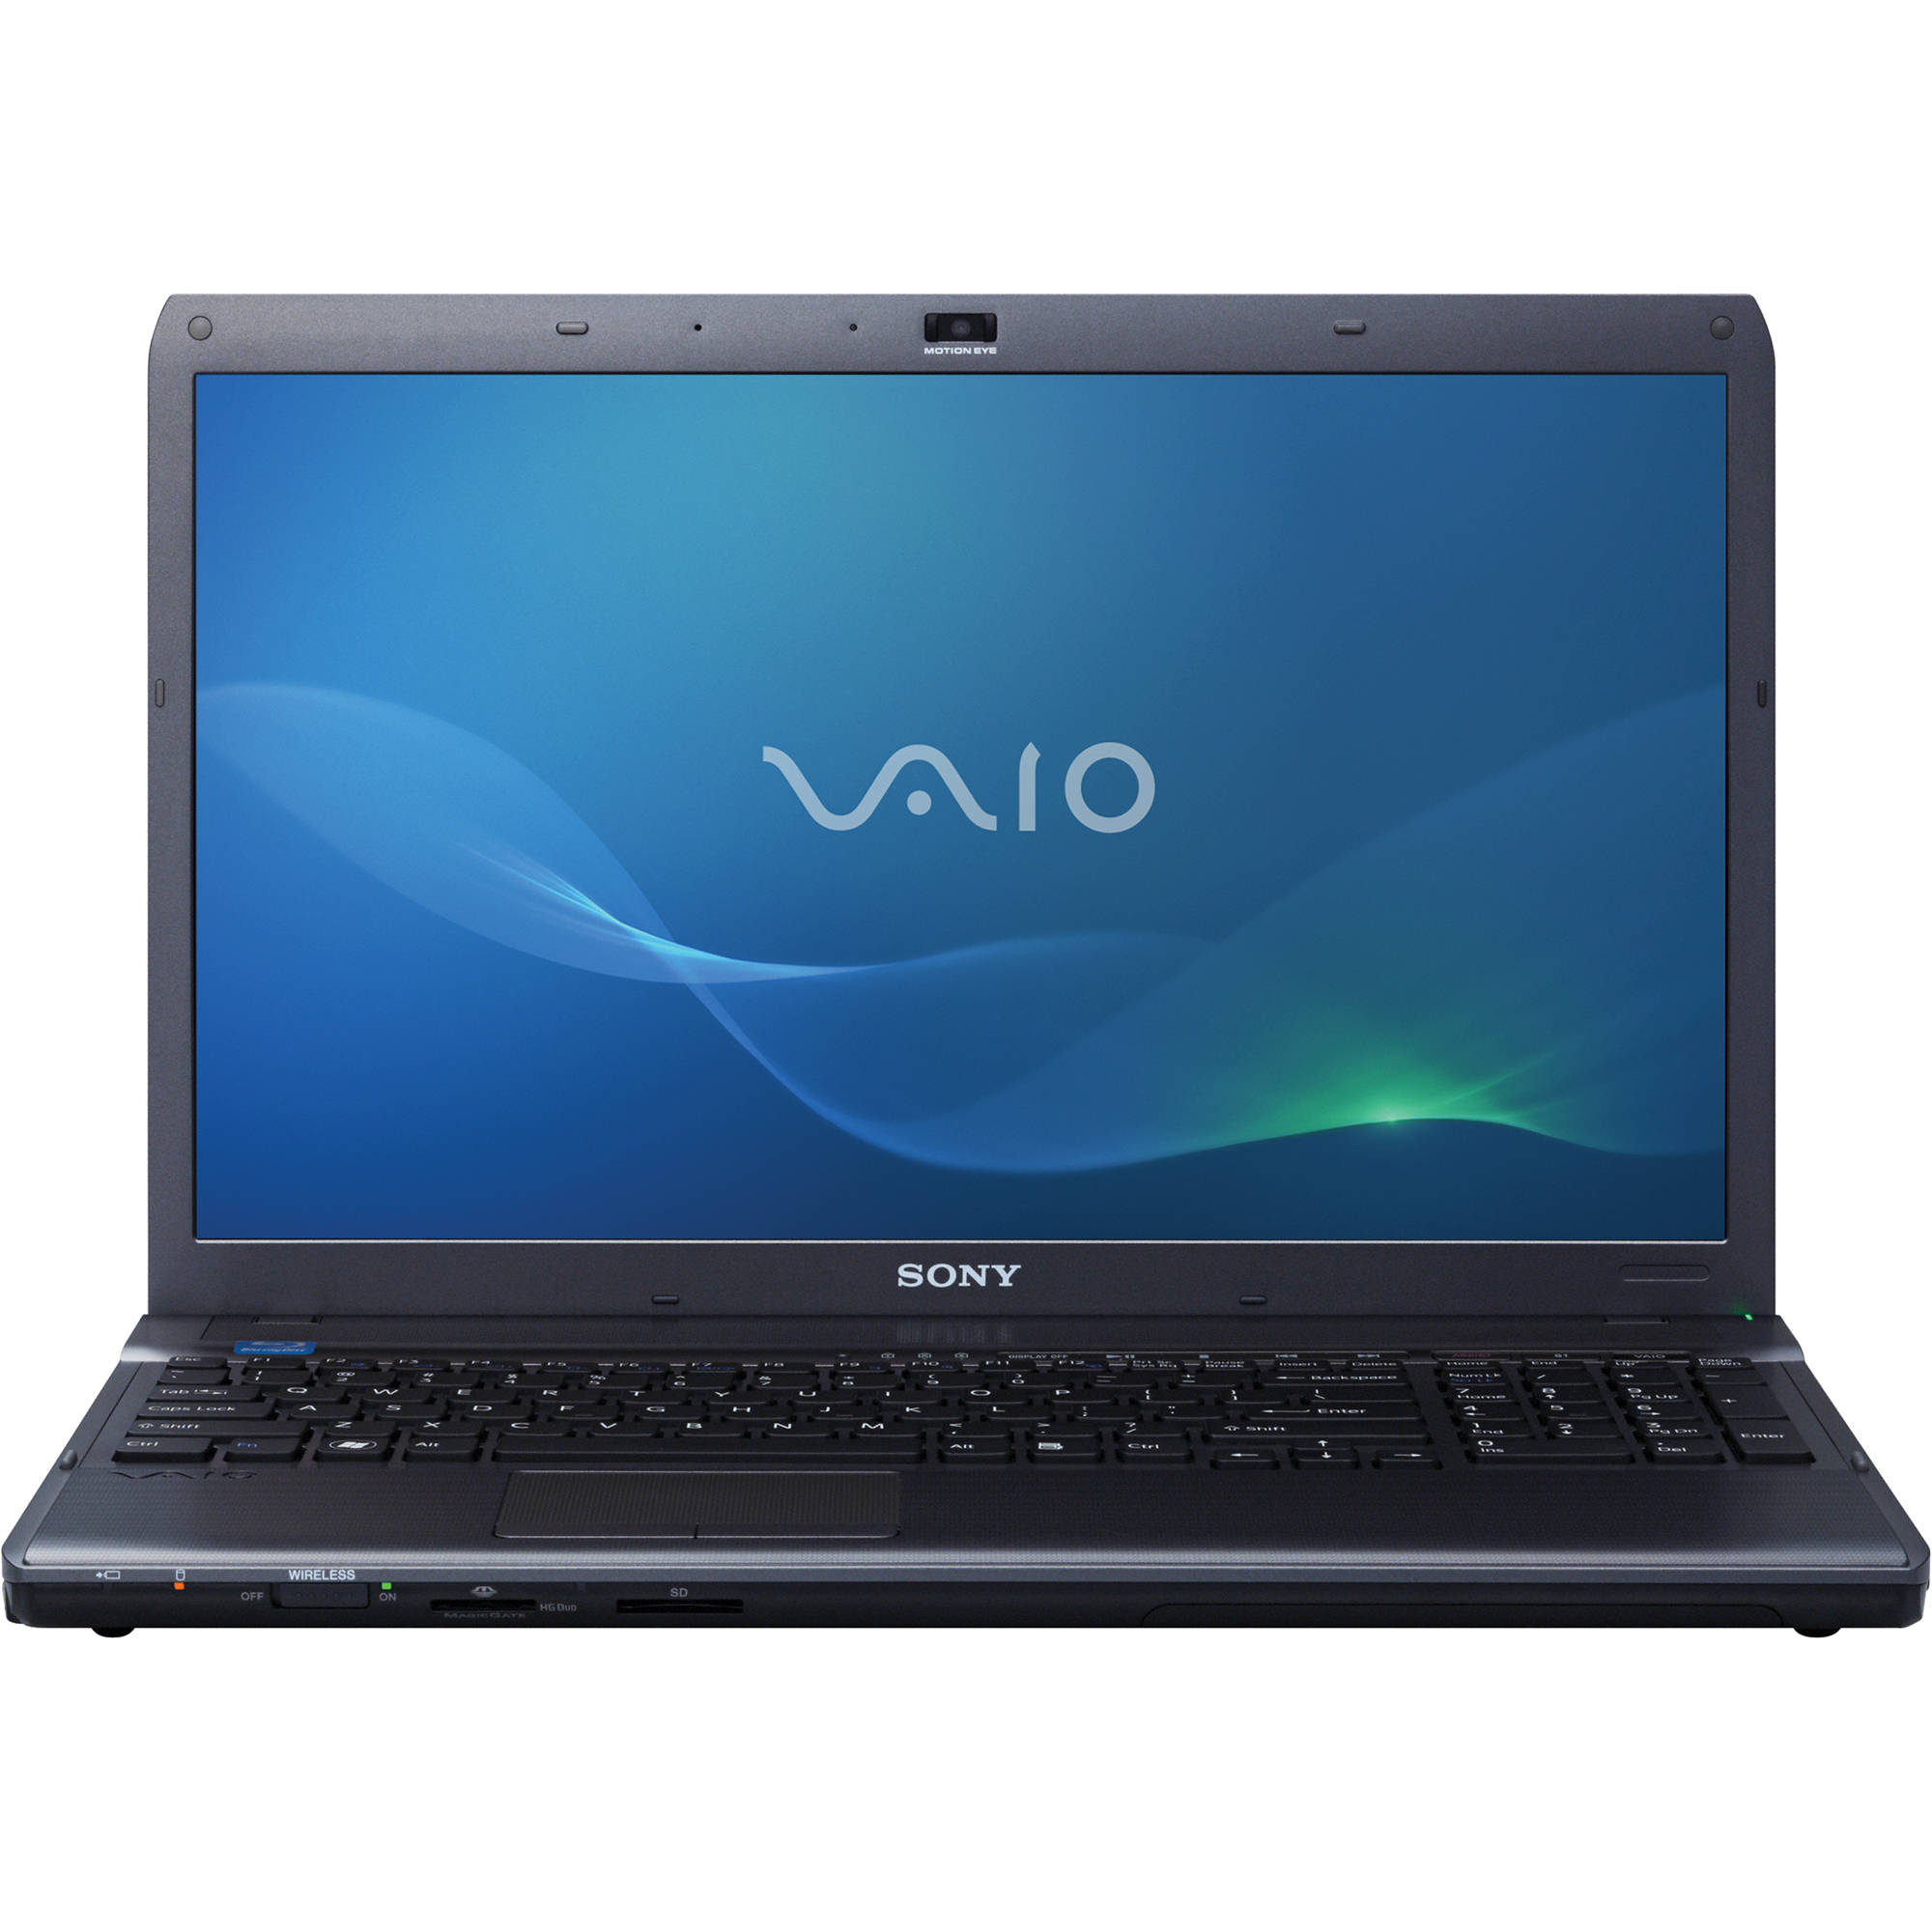 Sony Vaio VPCF137FX/H Notebook Driver for Mac Download